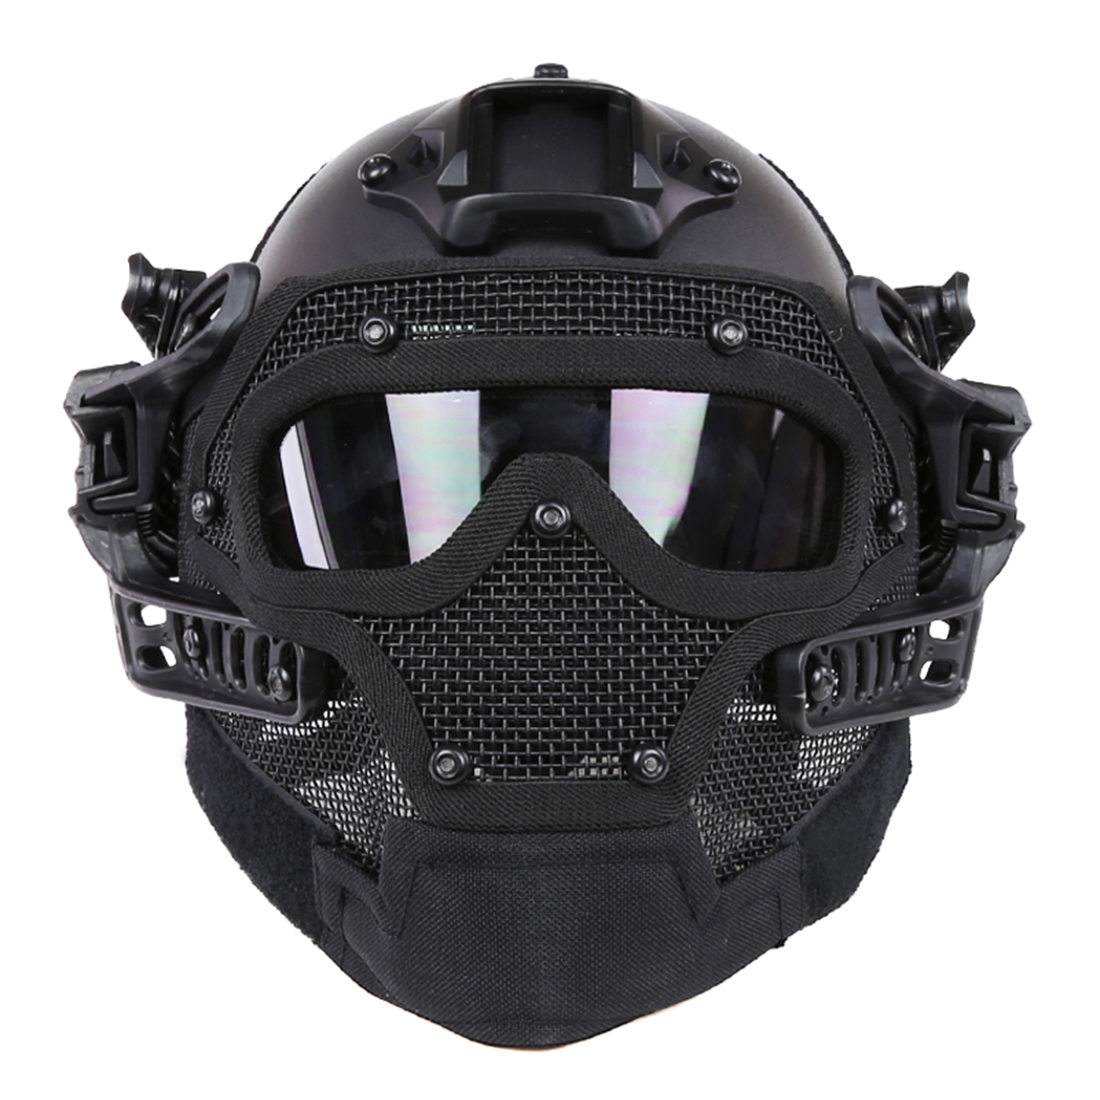 Steel Wire Protective FAST Helmet Suit for Nerf/for Airsoft Outdoor Activity Tactical Toy Accessories - Black nfstrike steel wire protective fast helmet suit for airsoft military tactics helmet for nerf accessories games outdoor activity